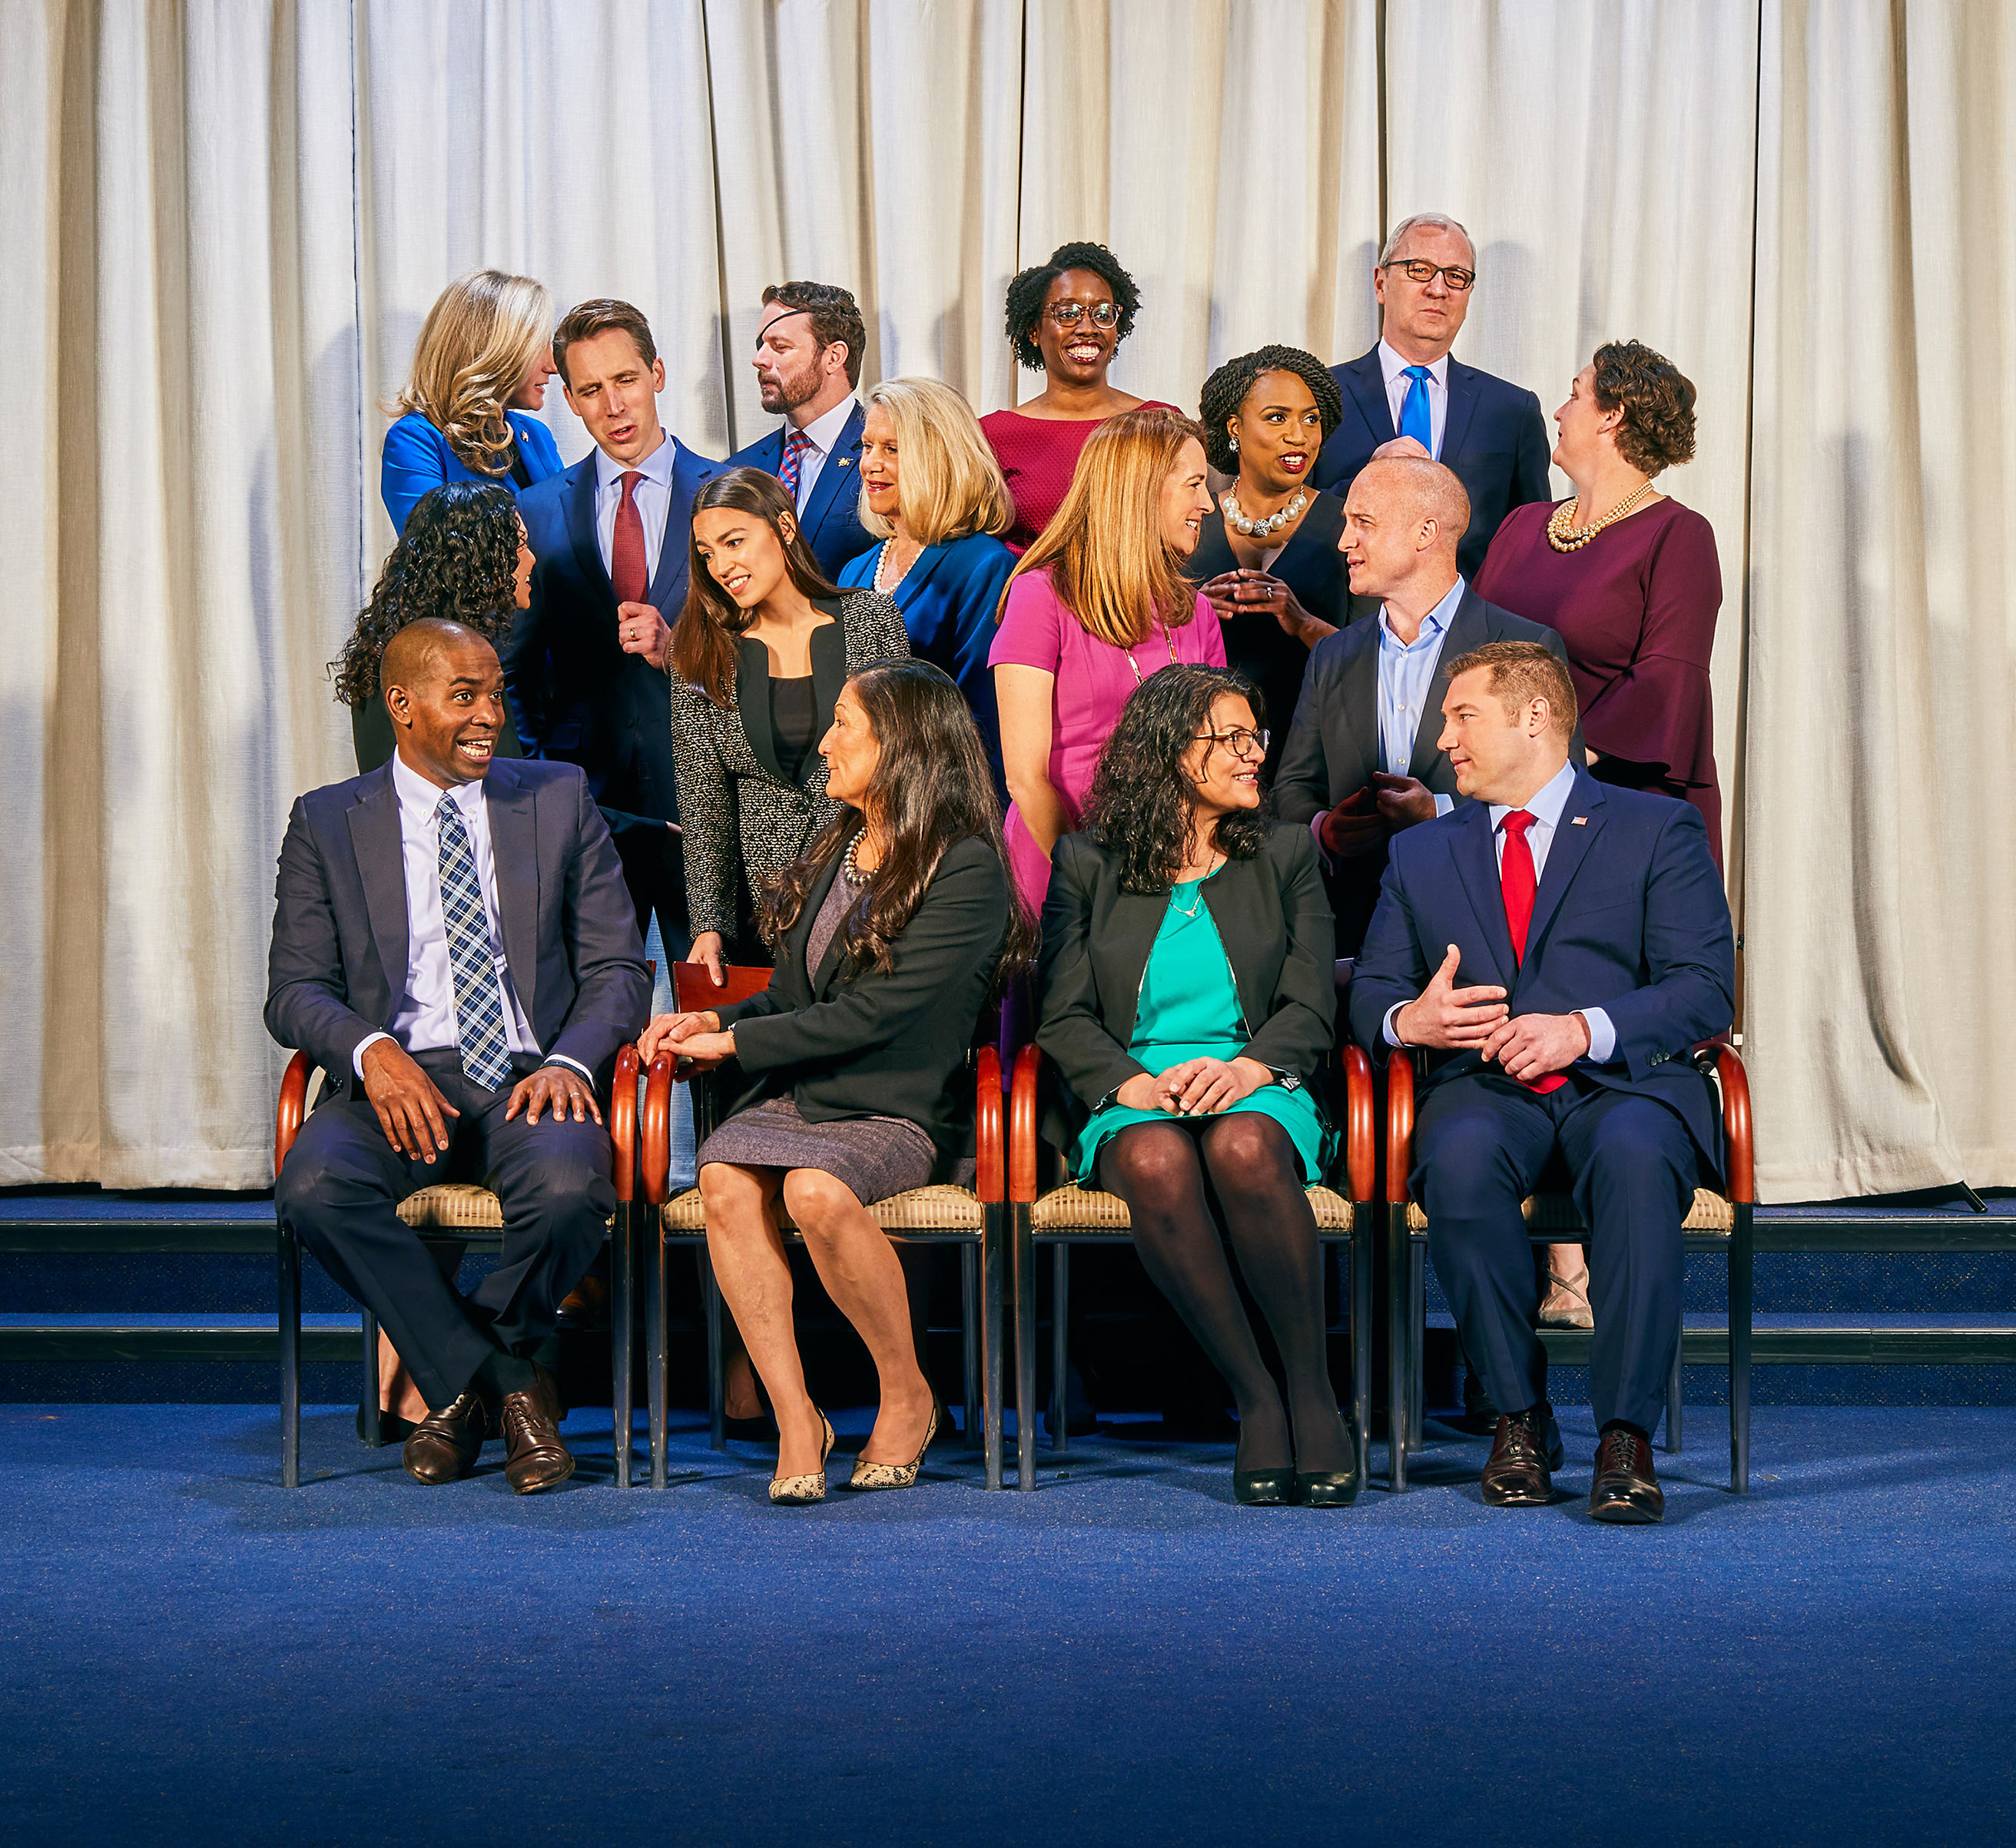 Front row, from left to right: Rep. Antonio Delgado (D–NY), Rep. Deb Haaland (D–NM), Rep. Rashida Tlaib (D–MI), Rep. Guy Reschenthaler (R–PA); Second row, from left to right: Rep. Xochitl Torres Small (D–NM), Rep. Alexandria Ocasio-Cortez (D–NY), Rep. Mikie Sherrill (D–NJ), Rep. Max Rose (D–NY), Third row, from left to right: Sen. Josh Hawley (R–MO), Rep. Carol Miller (R–WV), Rep. Ayanna Pressley (D–MA), Rep. Katie Porter (D–CA); Fourth/last row, from left to right: Rep. Abigail Spanberger (D–VA), Rep. Dan Crenshaw (R–TX), Rep. Lauren Underwood (D–IL), Sen. Kevin Cramer (R–ND).  The class of 2019 looks more like America,  Jan. 21 issue.